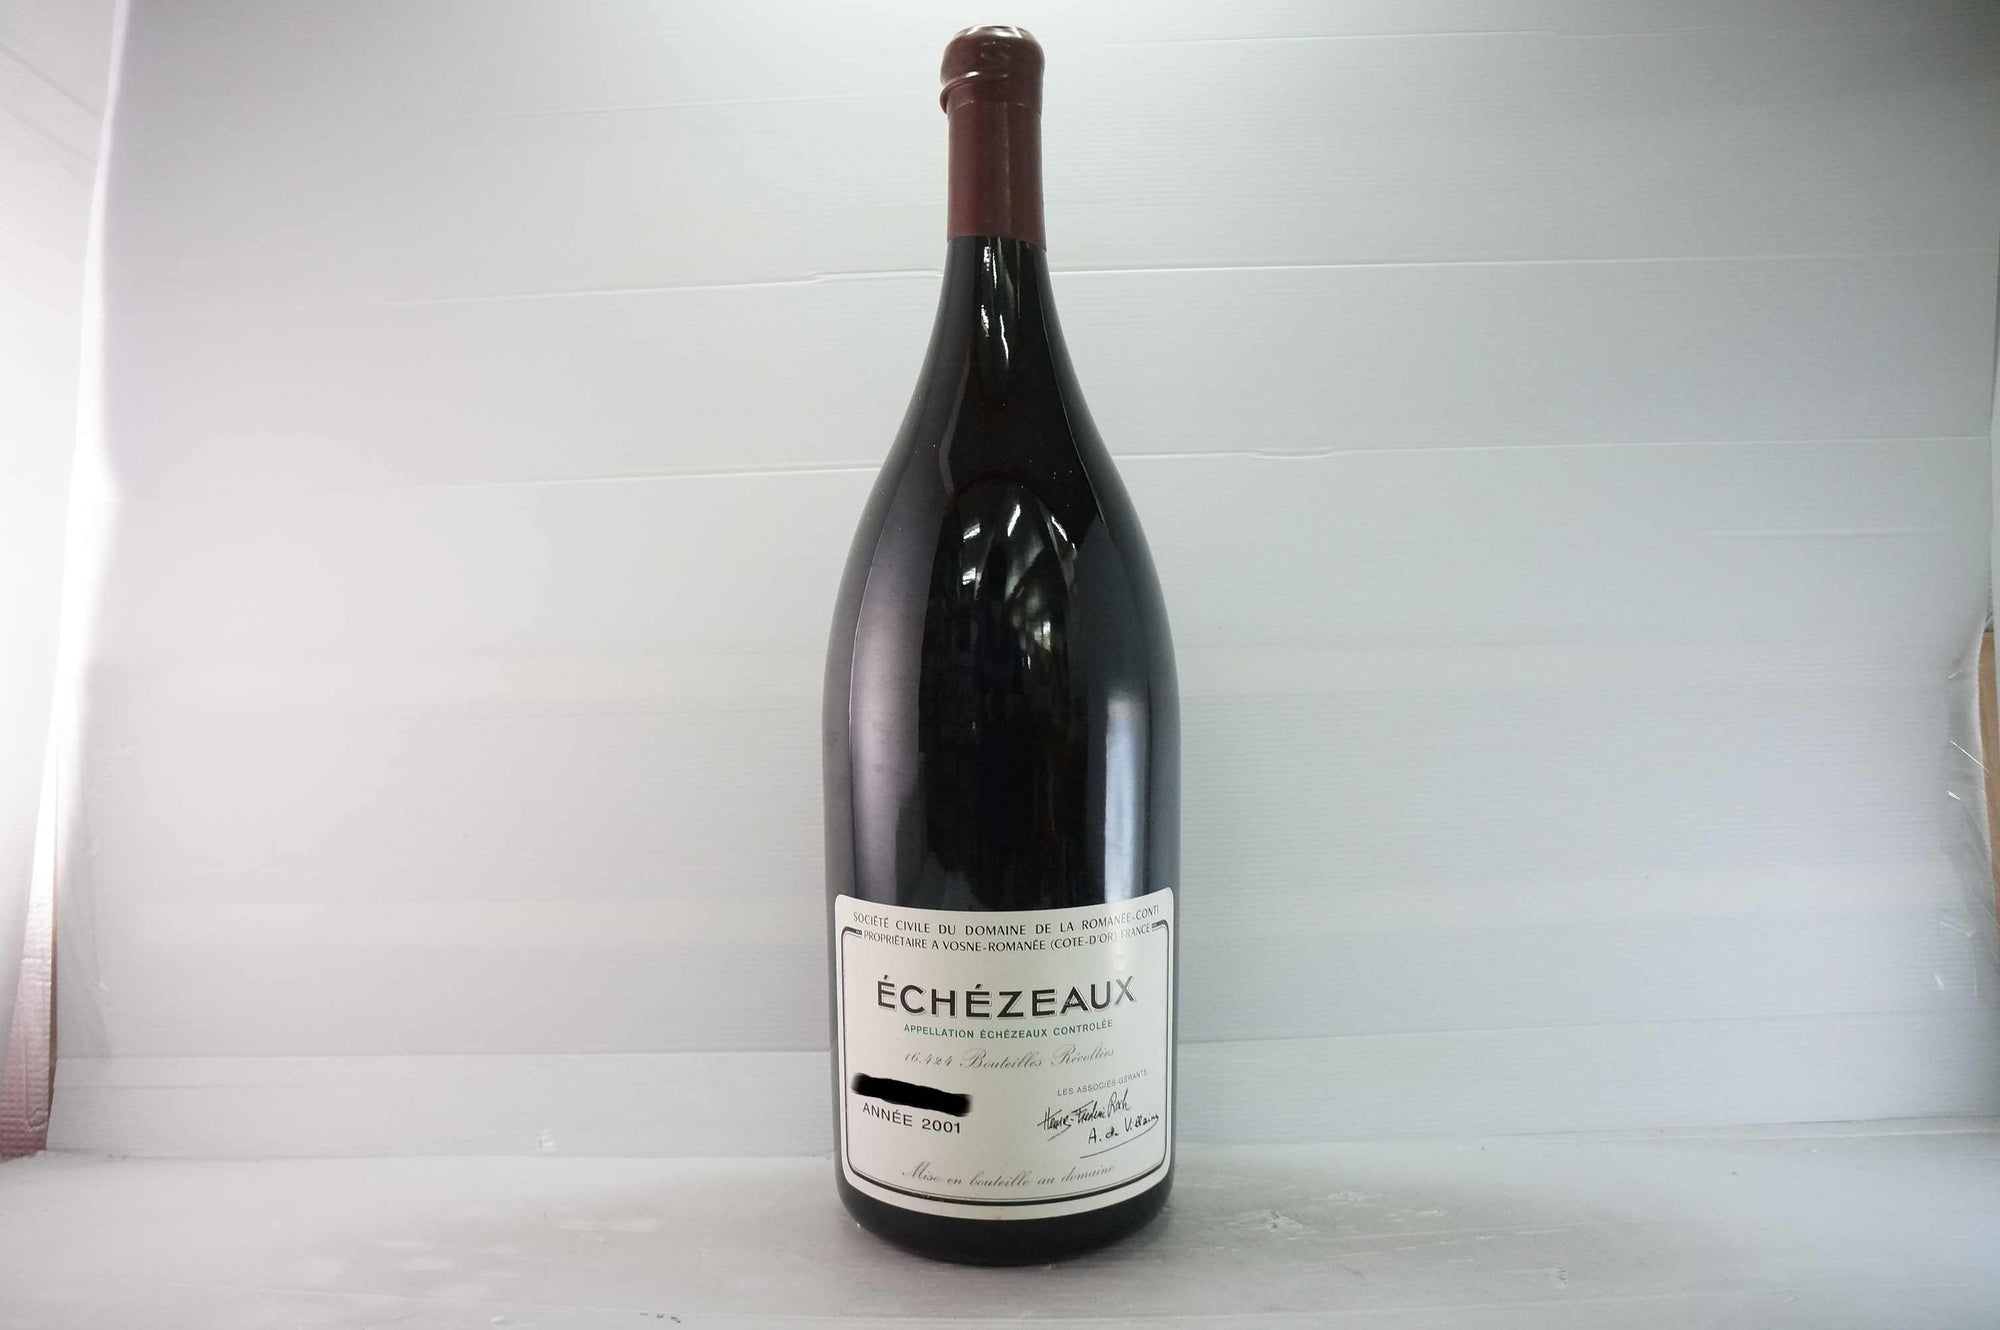 DRC Echezeaux Grand Cru Methuselah 2001